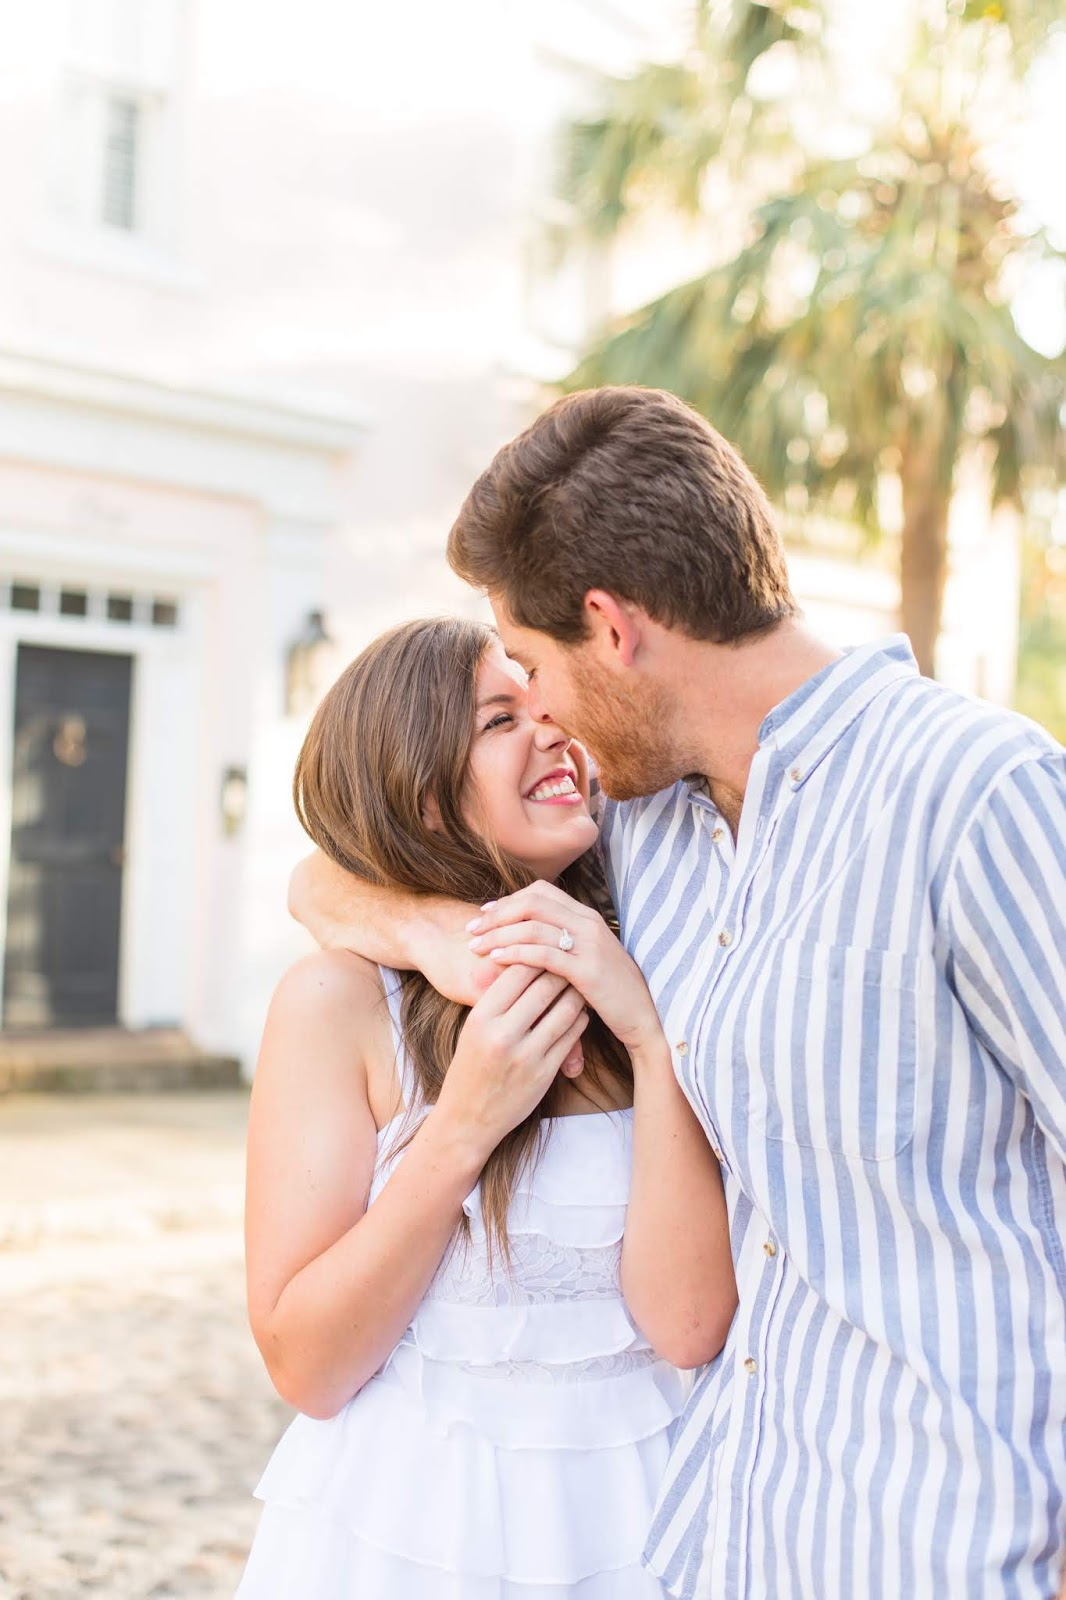 Charleston Engagement Photoshoot - Chasing Cinderella